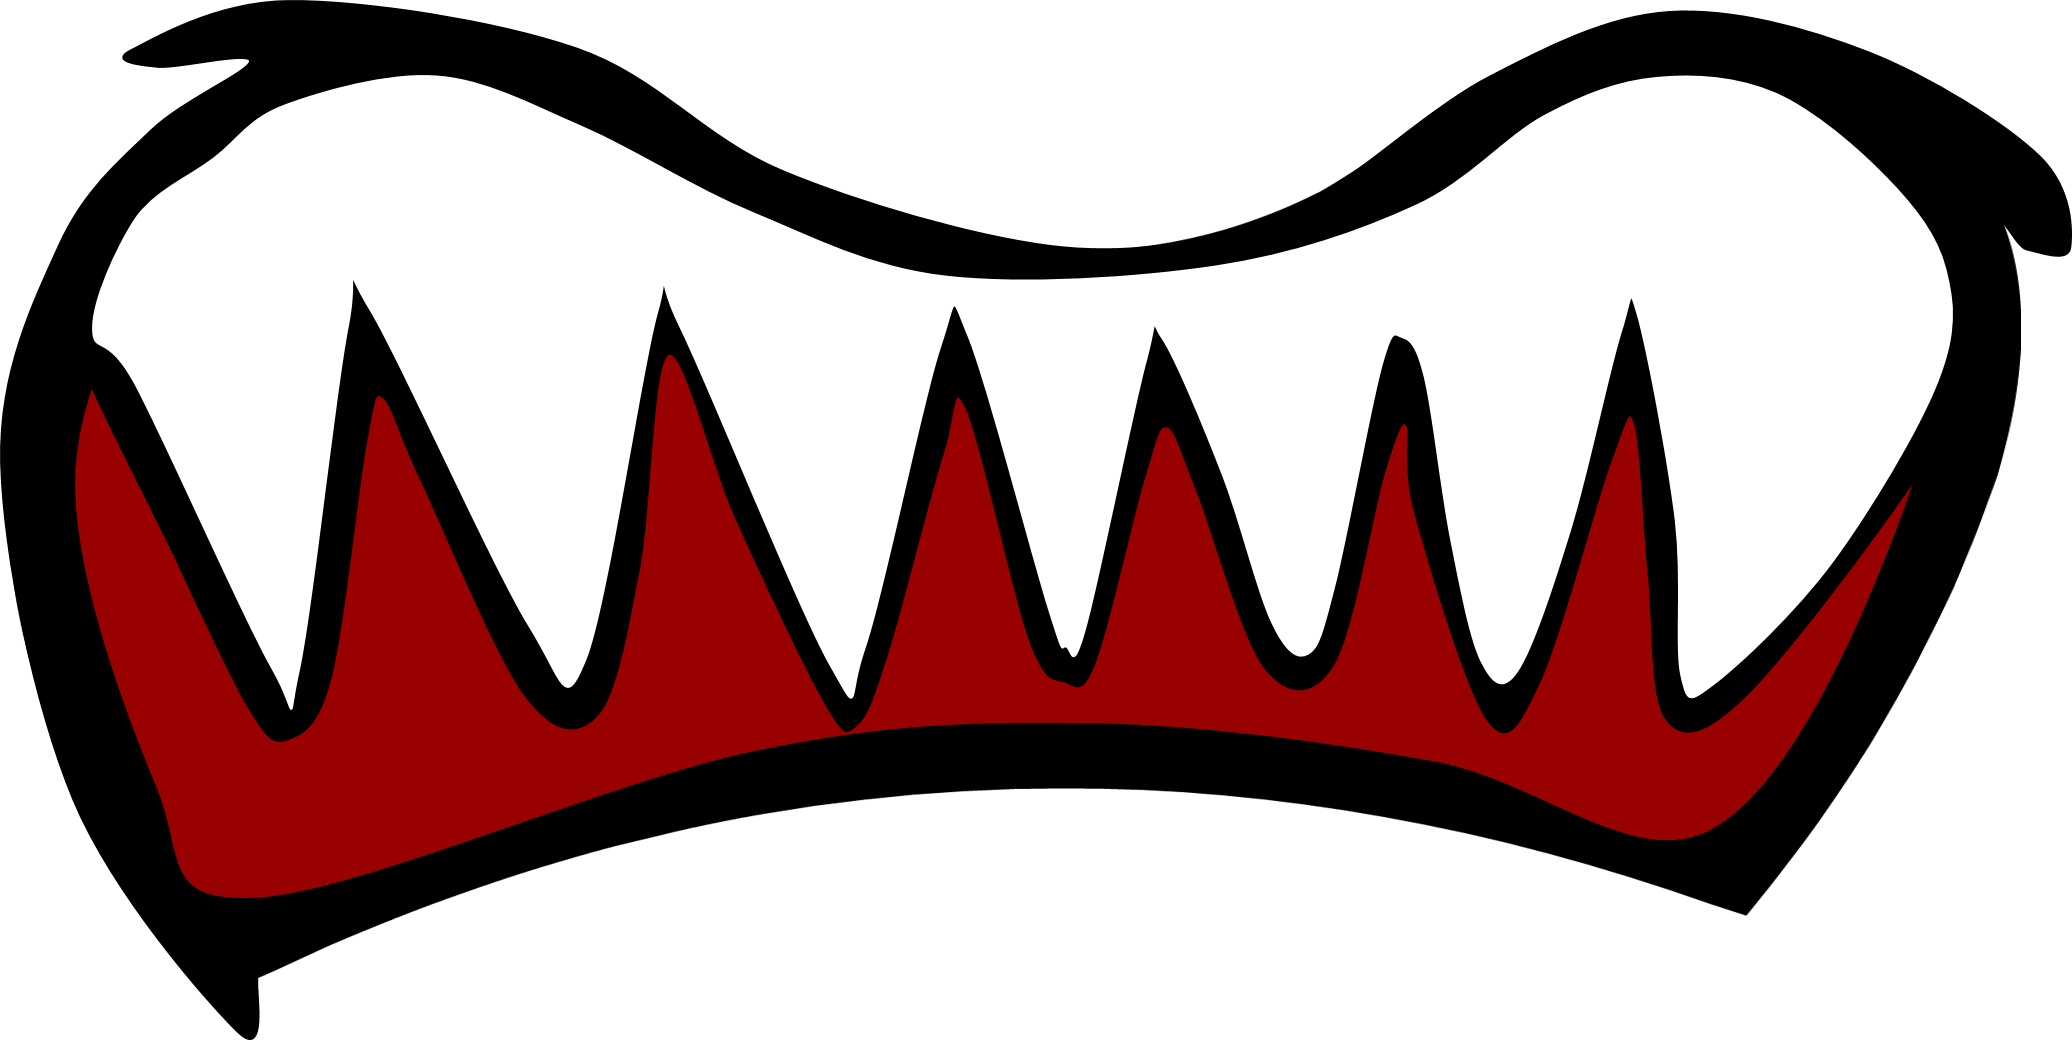 Image new scared mouth. Cloudy clipart scary